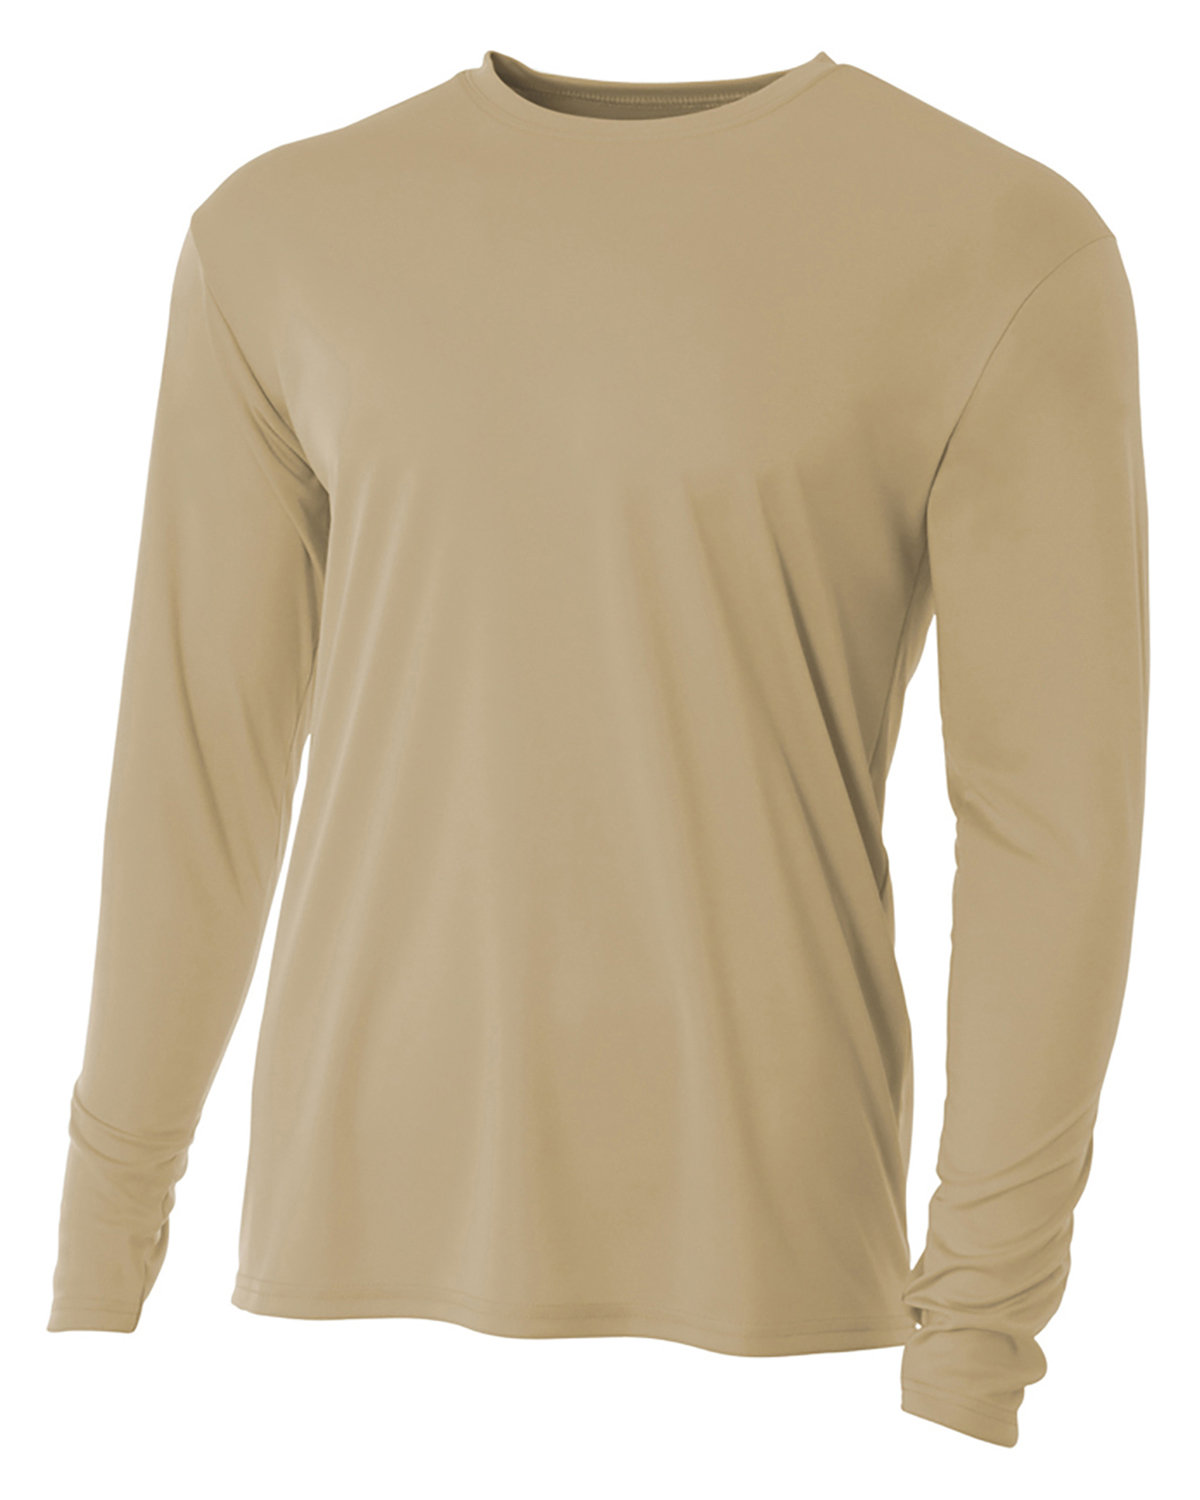 A4 Youth Long Sleeve Cooling Performance Crew Shirt SAND